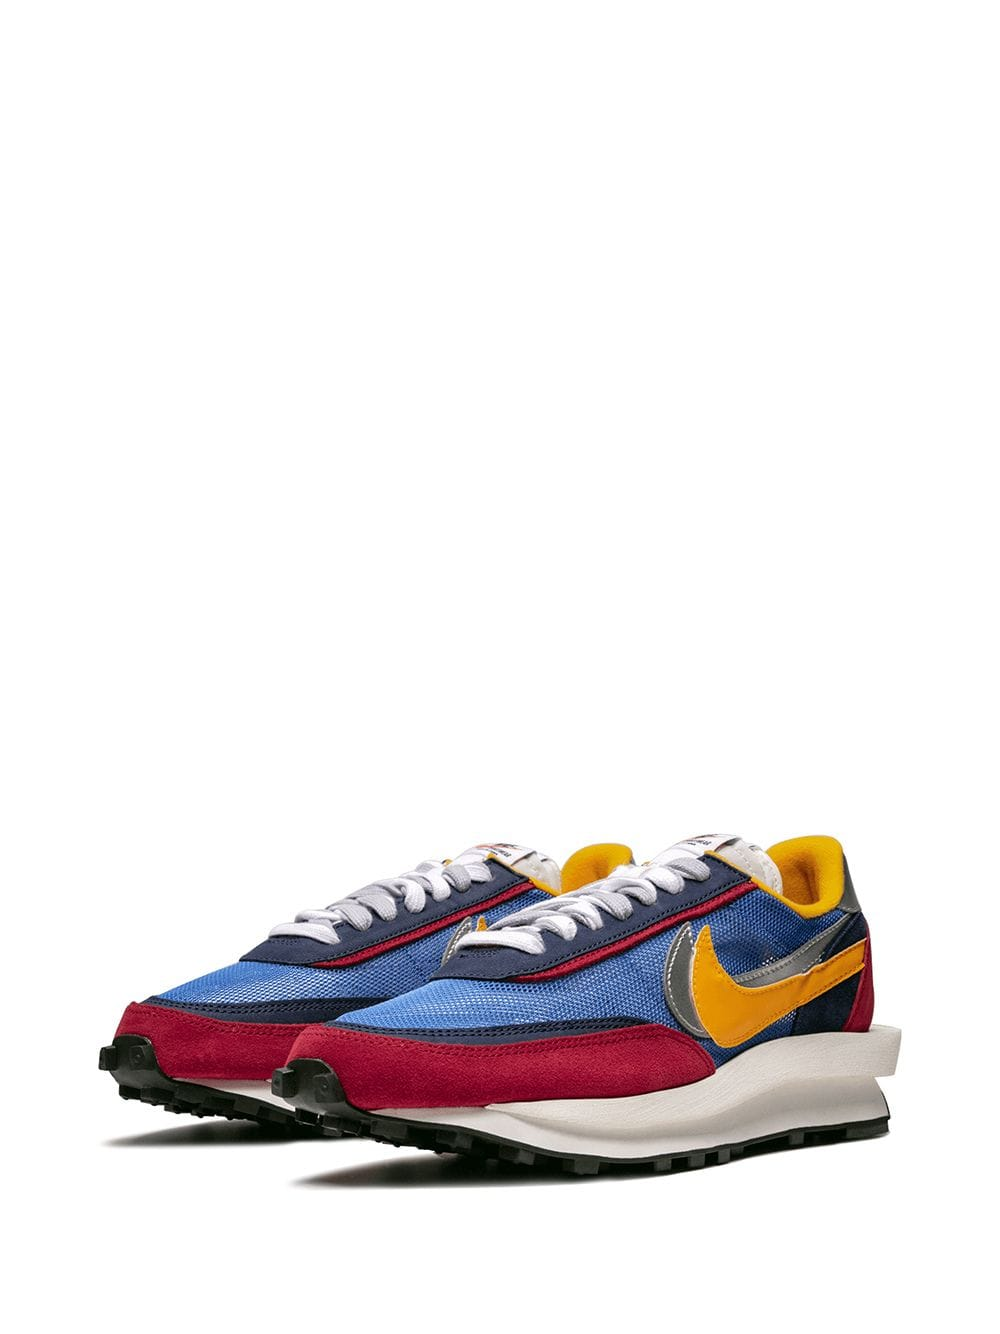 Nike x Sacai sneakers at Farfetch - £1,078 - The fashion crowd went crazy for these sneakers when they were first unveiled last season. You can see why. Double ticks and double tongues.